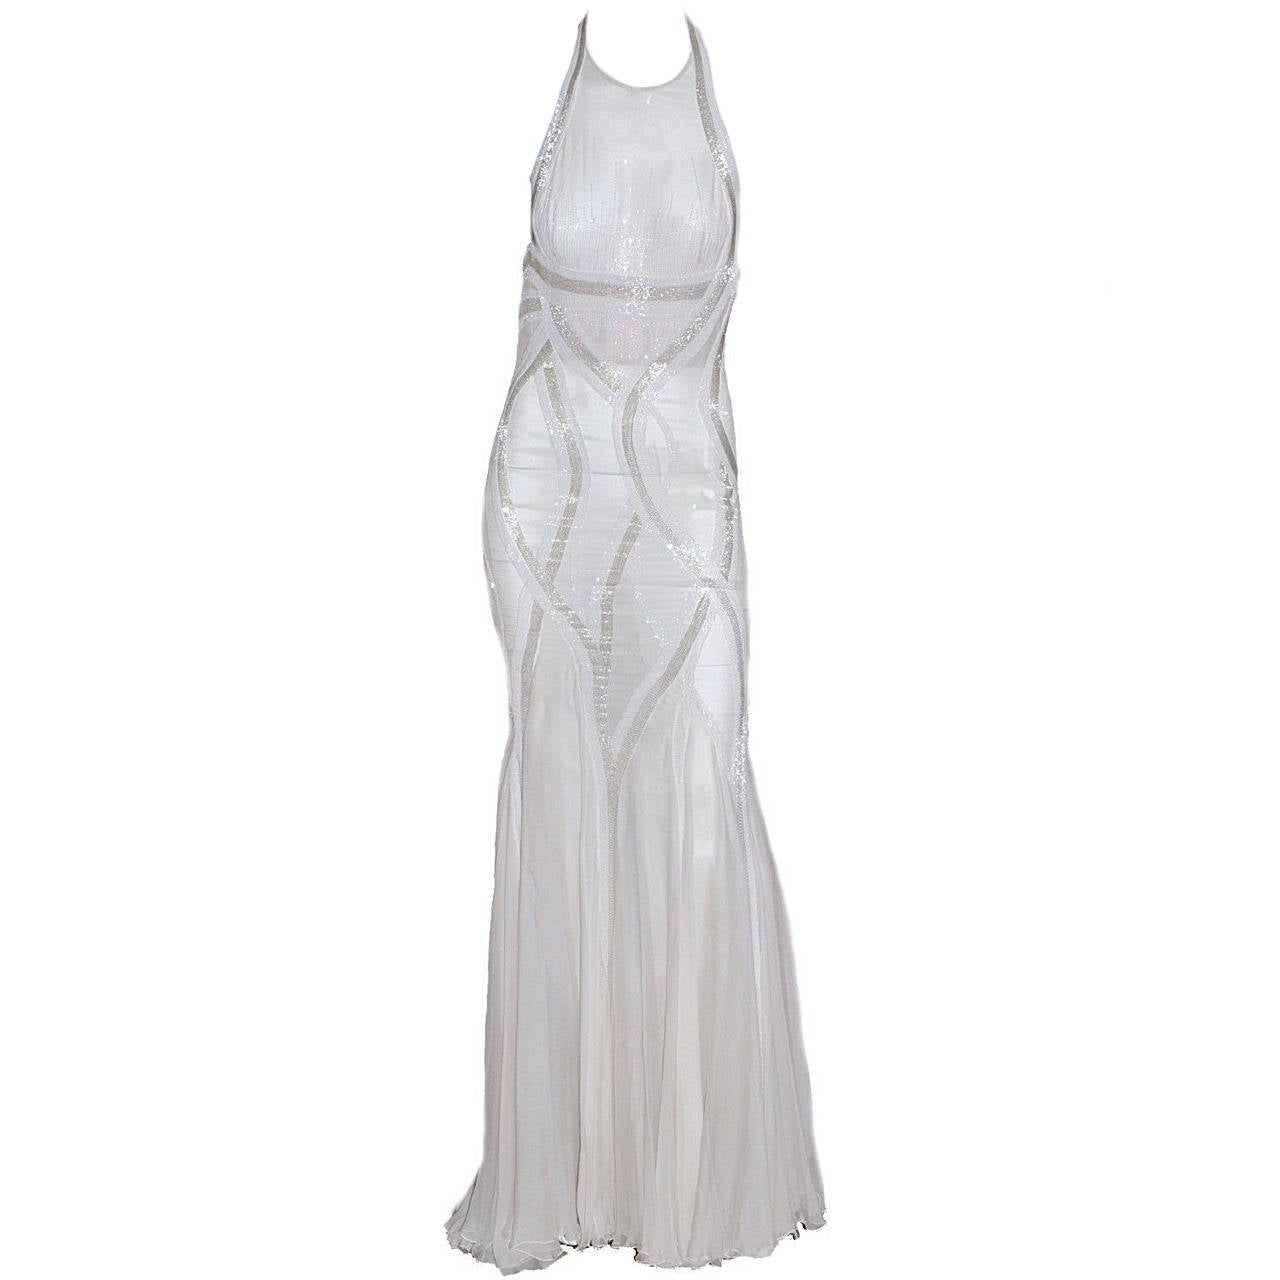 New VERSACE EMBELLISHED MERMAID CHIFFON GOWN 1